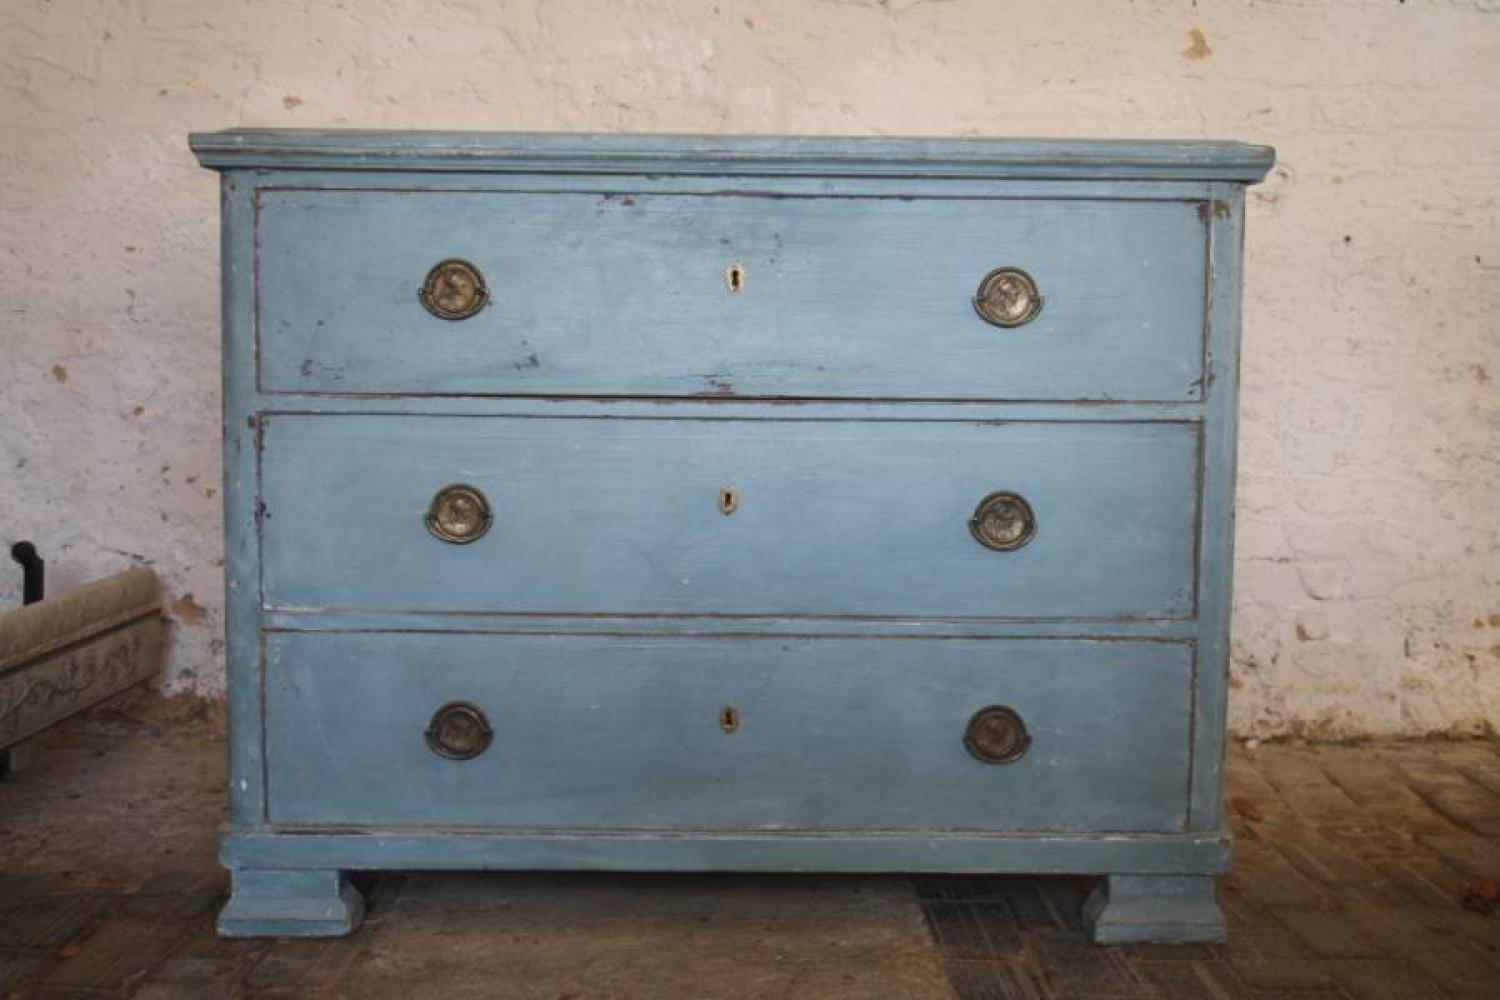 Chest of Drawers - C19th